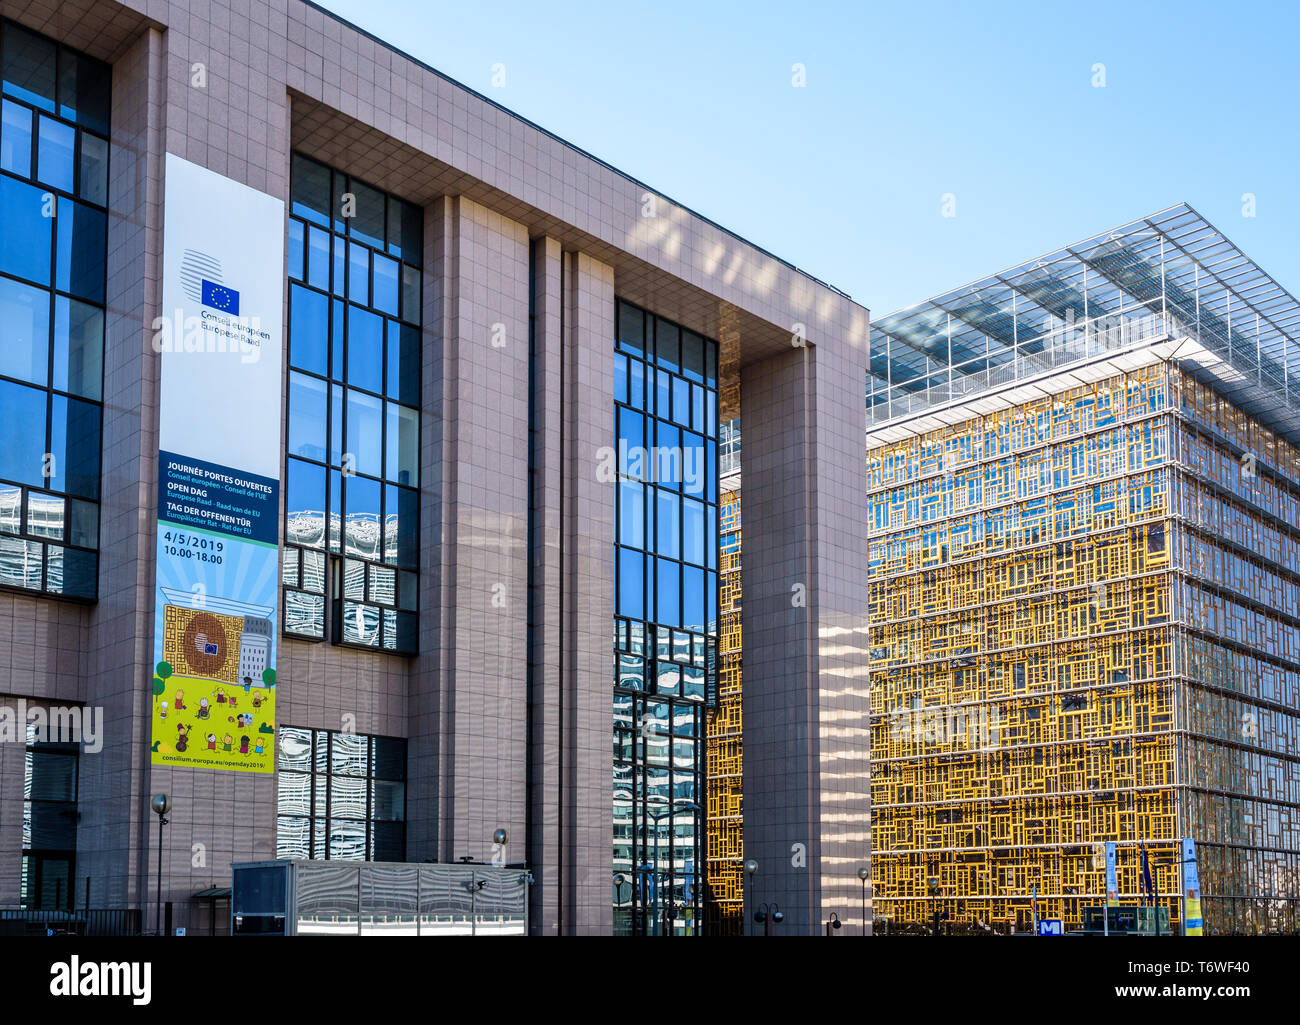 Close-up view of the Justus Lipsius building (left) and Europa building (right), seat of the Council of the European Union in Brussels, Belgium. - Stock Image